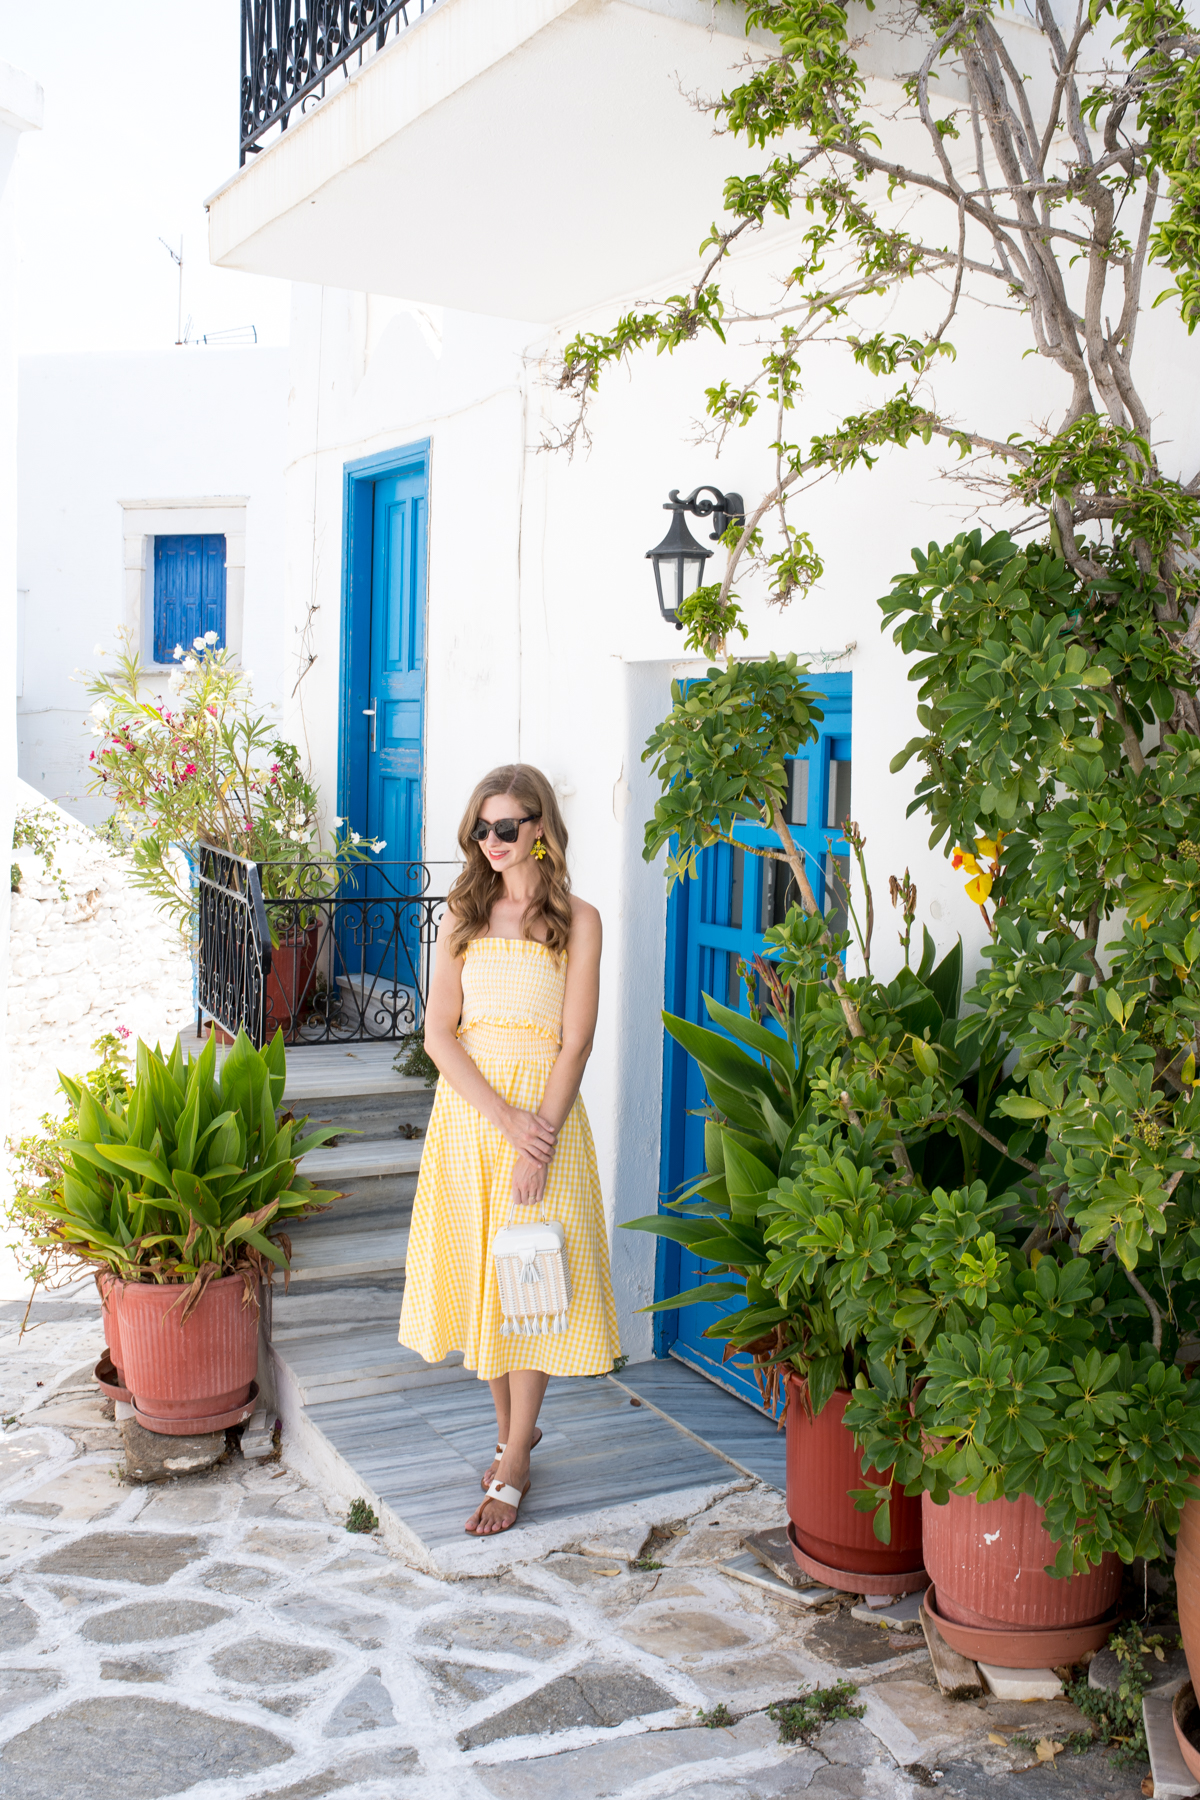 Stacie Flinner Travel Guide Paros Greece-42.jpg